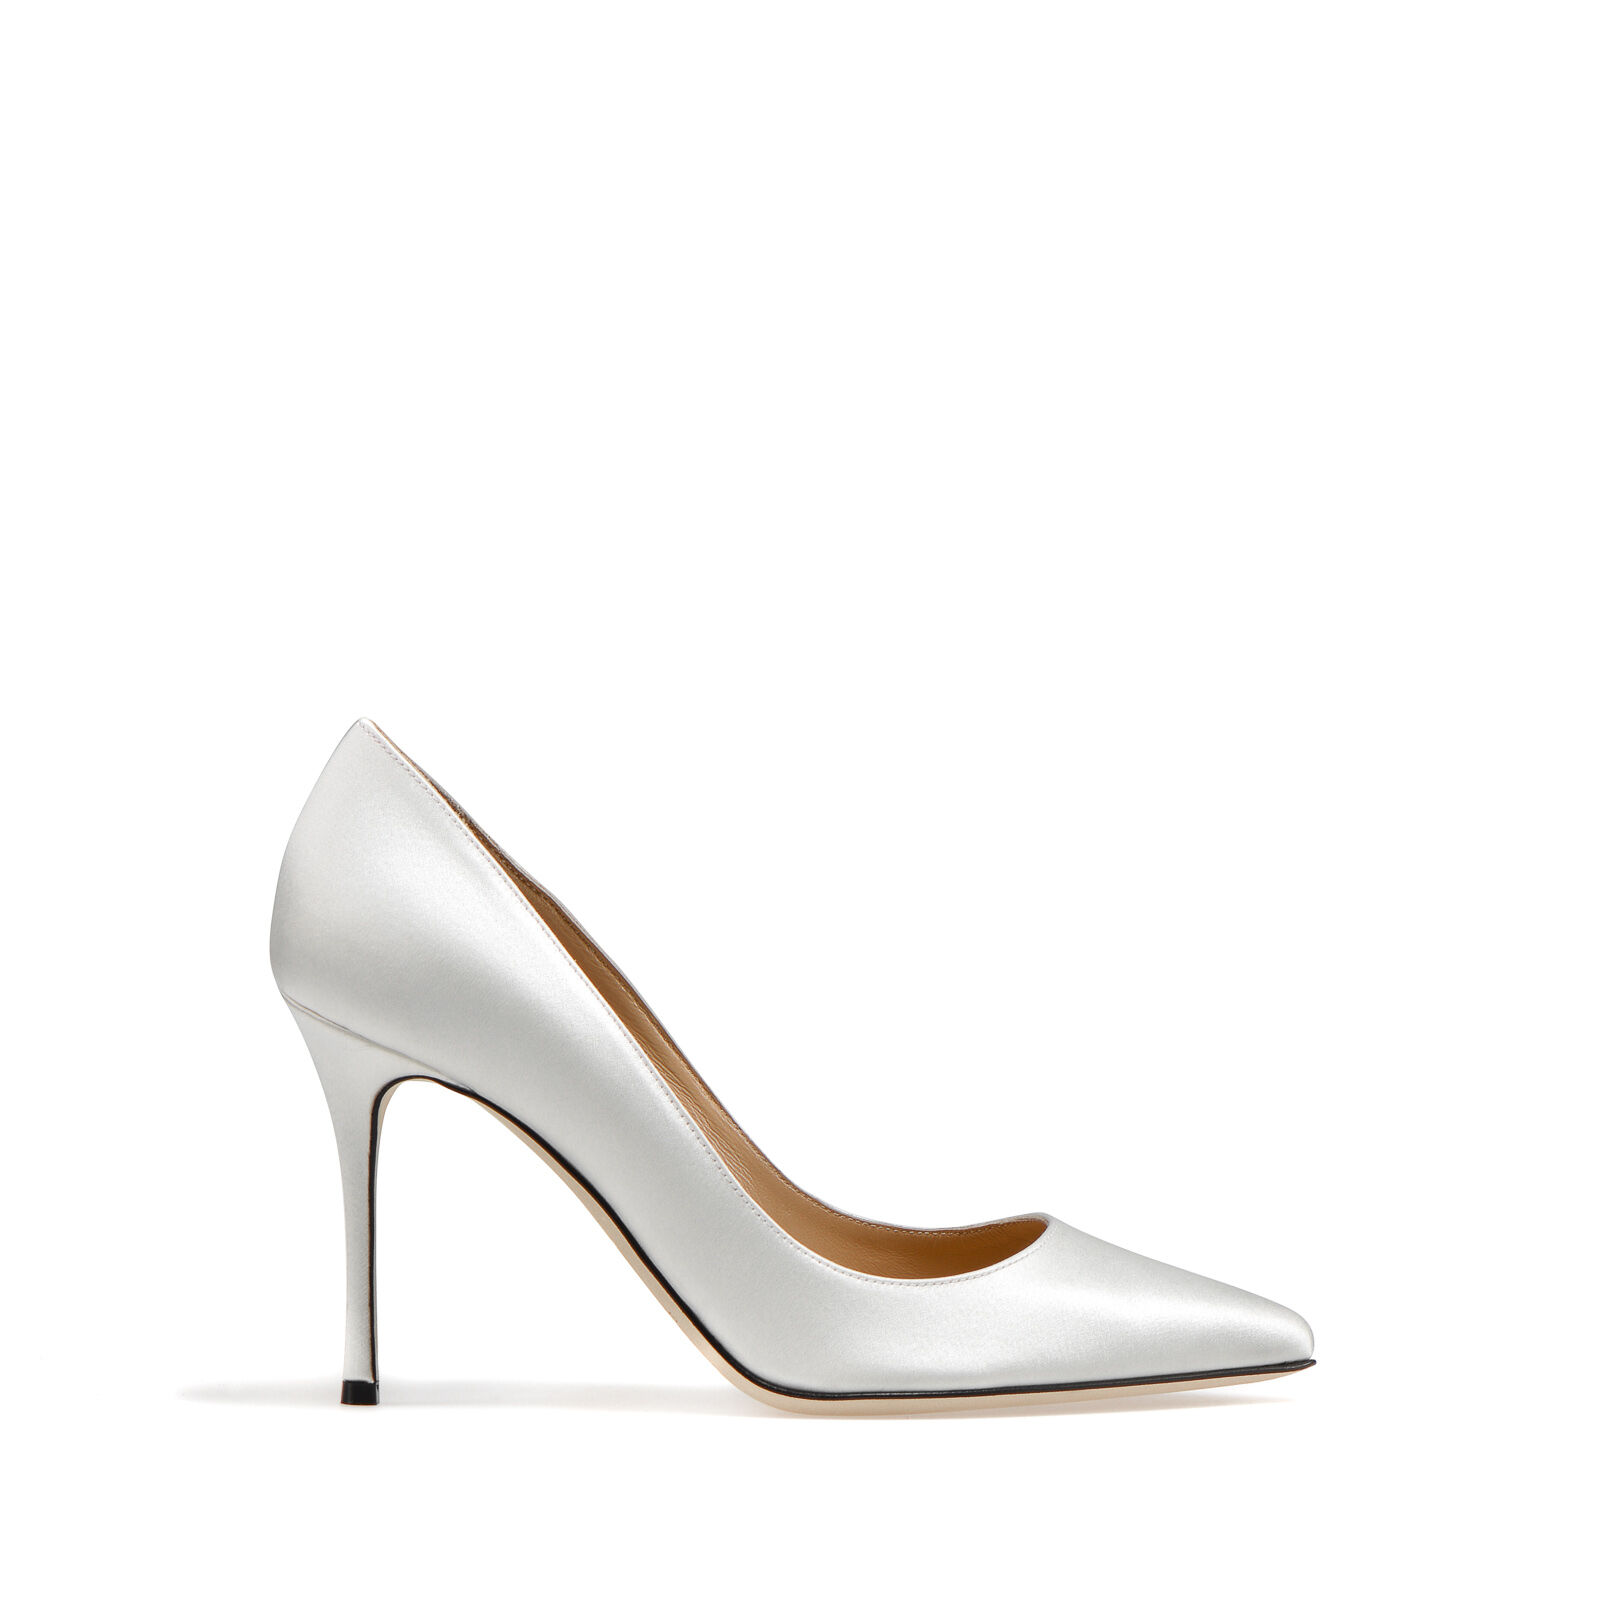 Sergio Rossi: Luxury Shoes Made in